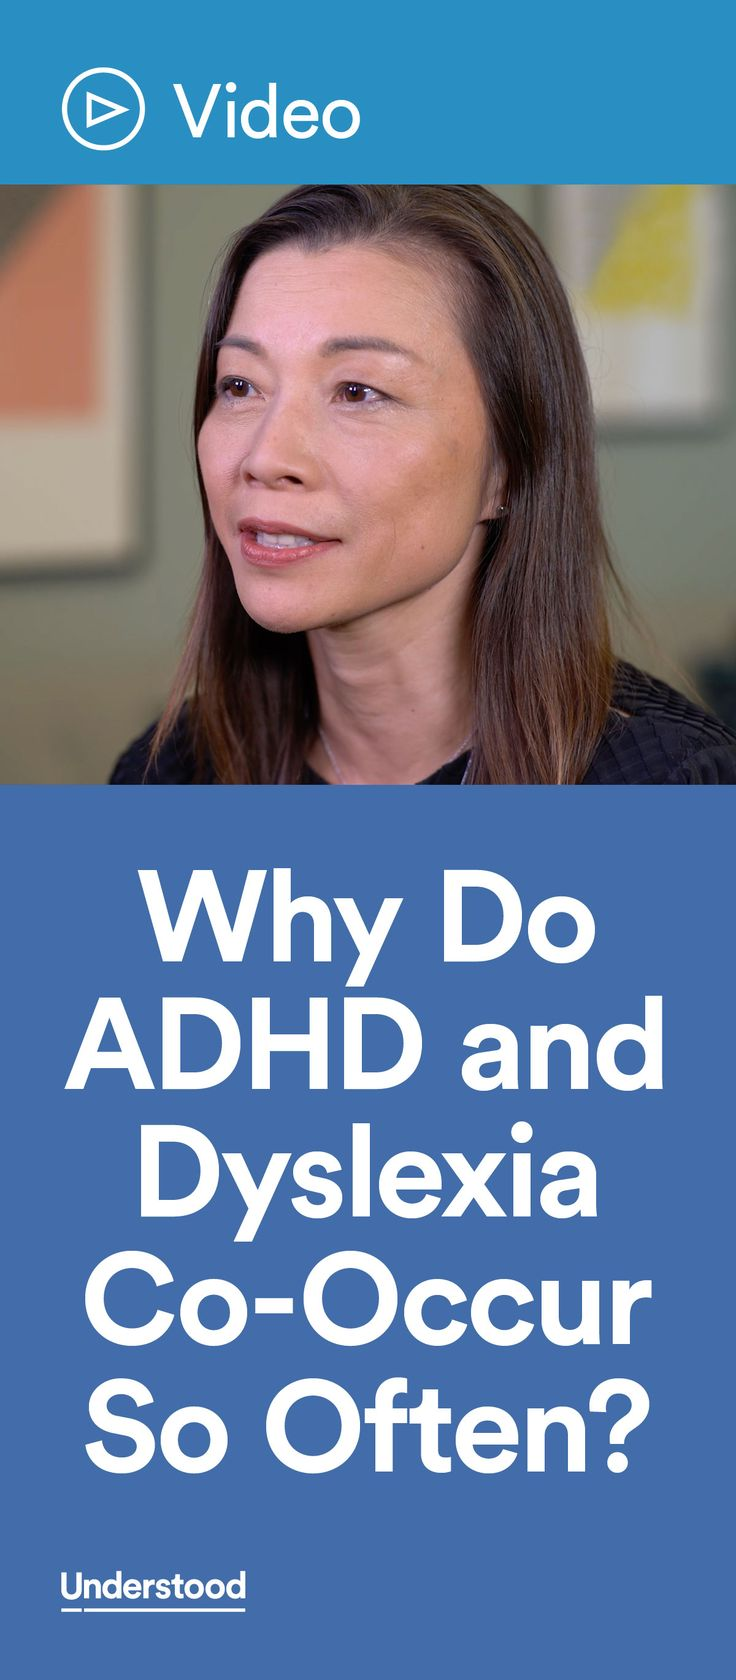 Watch as Fumiko Hoeft, M.D., Ph.D., professor of psychiatry at the Weill Institute for Neurosciences at UCSF, breaks down some of the possible reasons for ADHD and dyslexia co-occurrence.